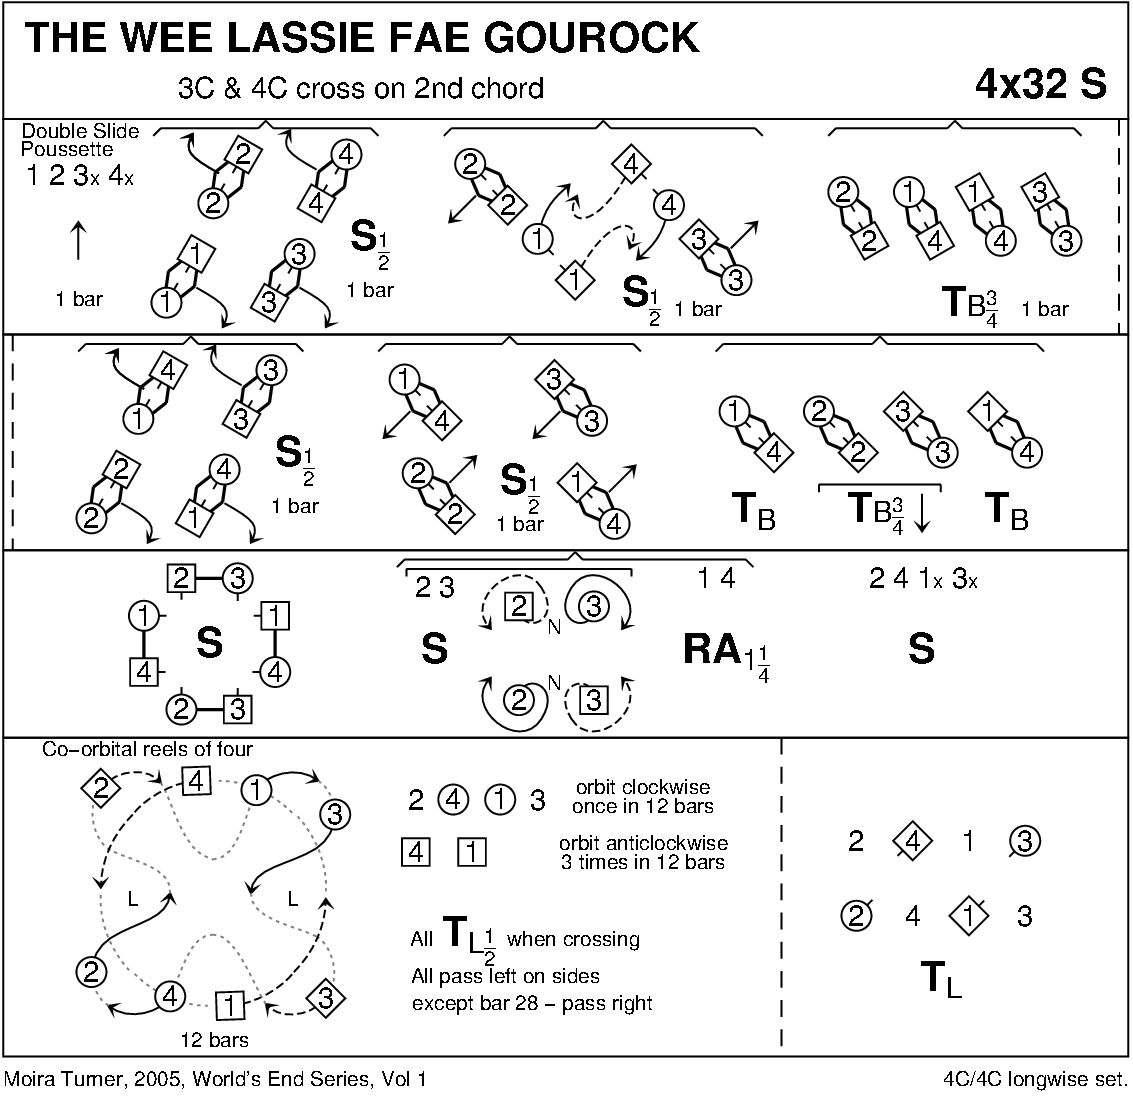 The Wee Lassie Fae Gourock Keith Rose's Diagram